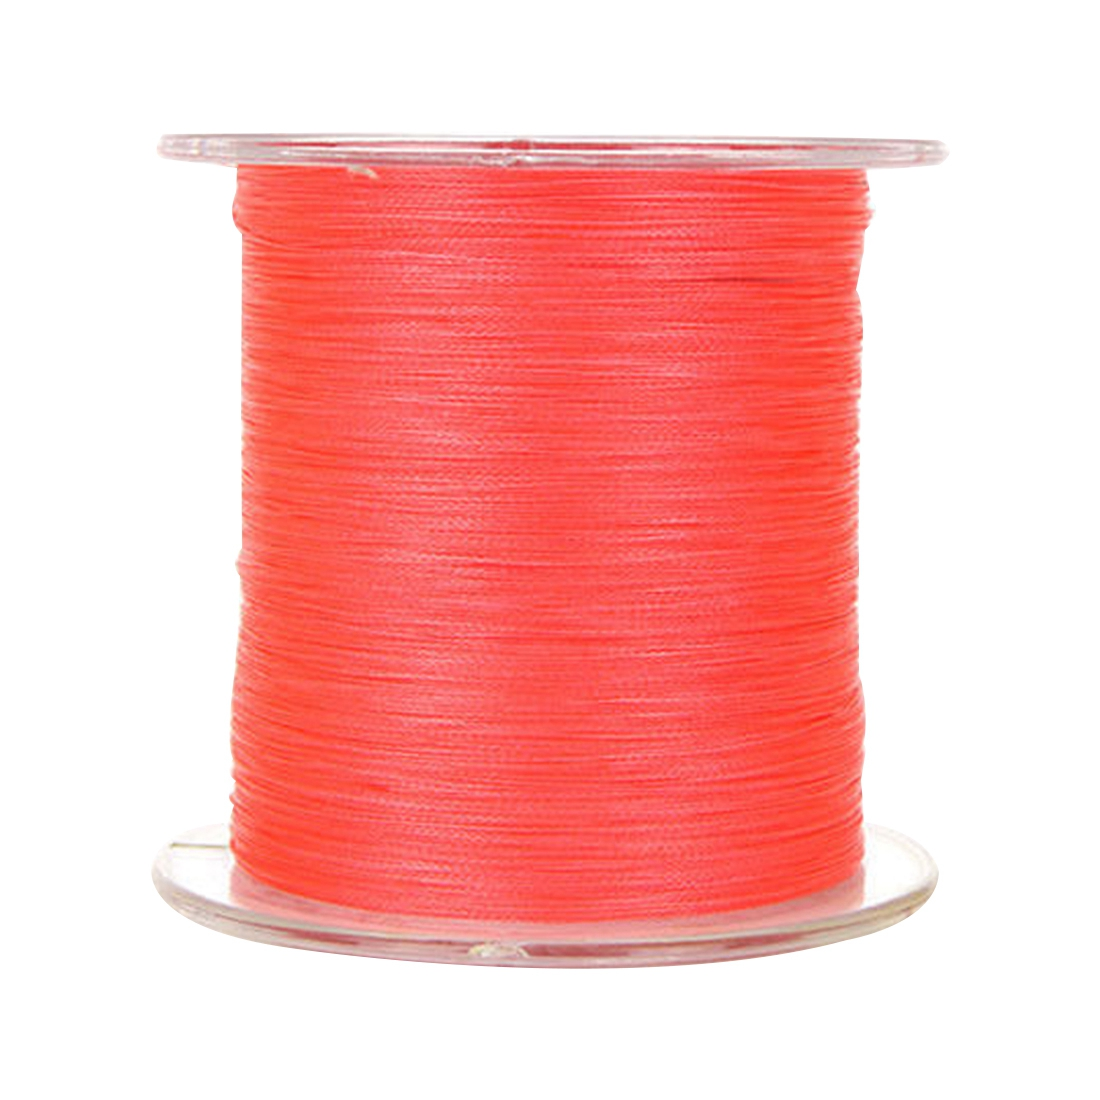 300M 50LB 0.26mm Fishing Line Strong Braided 4 Strands High quality Color:Red